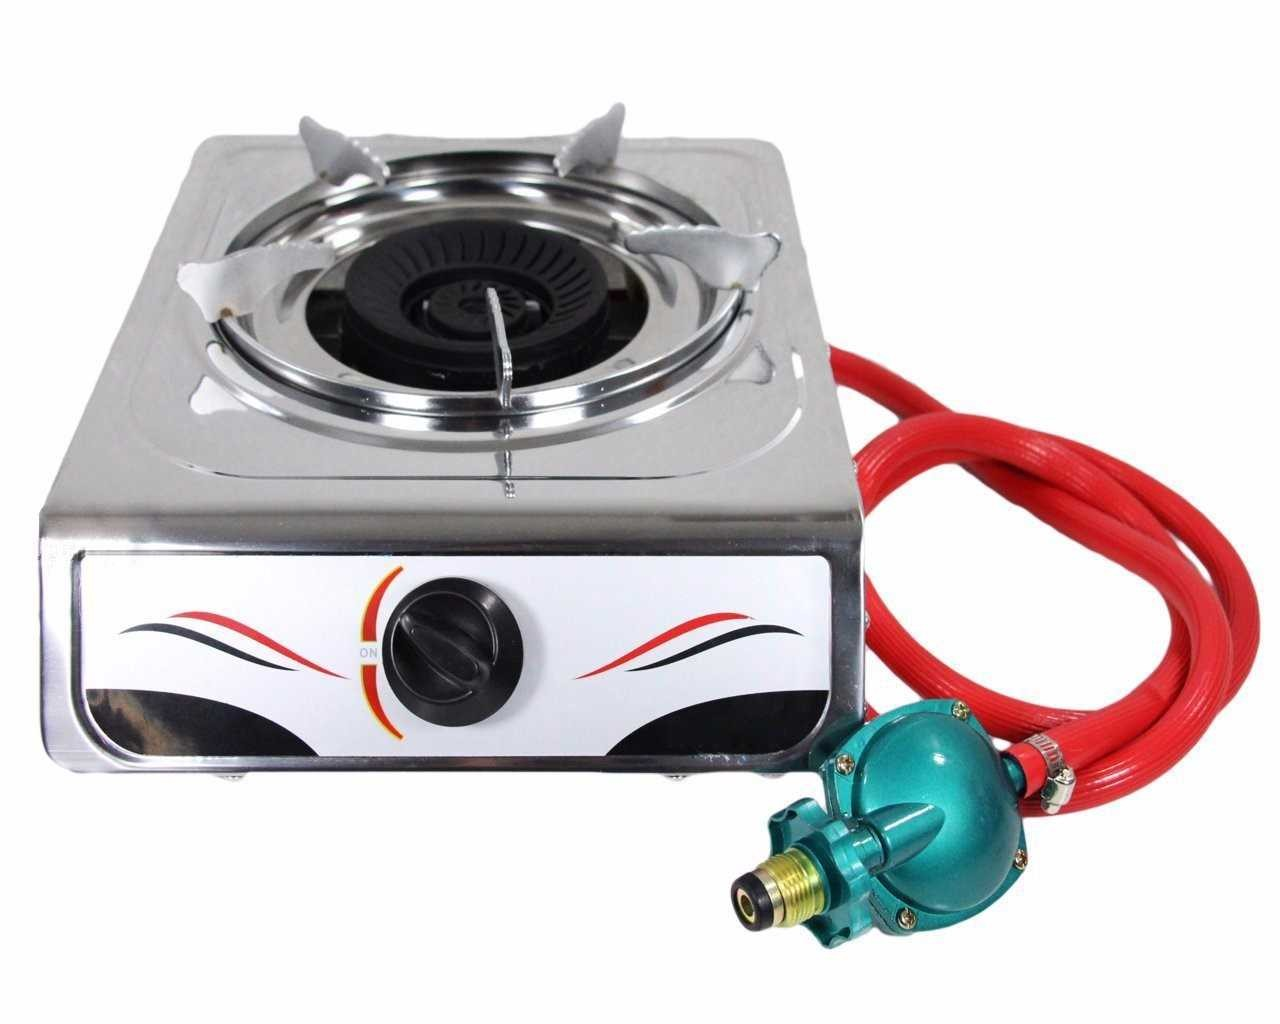 Bioexcel Portable Auto Ignition 15,000 BTU Single Burner Propane Gas Stove  Stainless Steel Body   Perfect